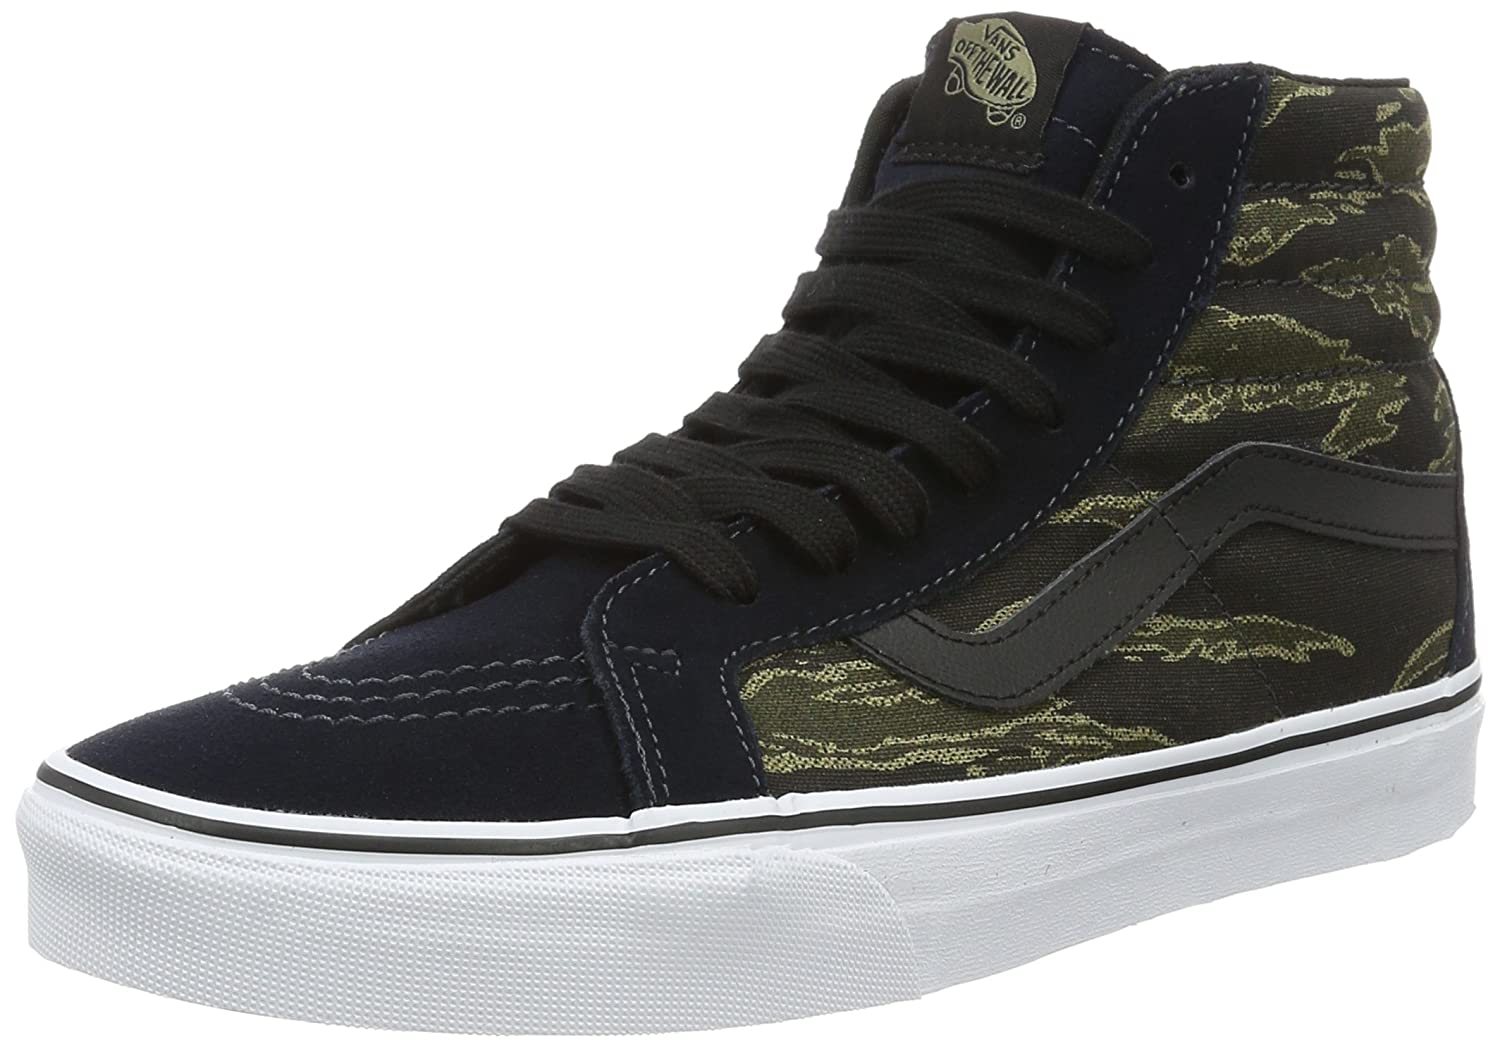 VANS MENS SK8 HI REISSUE LEATHER SHOES B01DYR36G0 12.5 B(M) US Women / 11 D(M) US Men|Dark Navy/Black